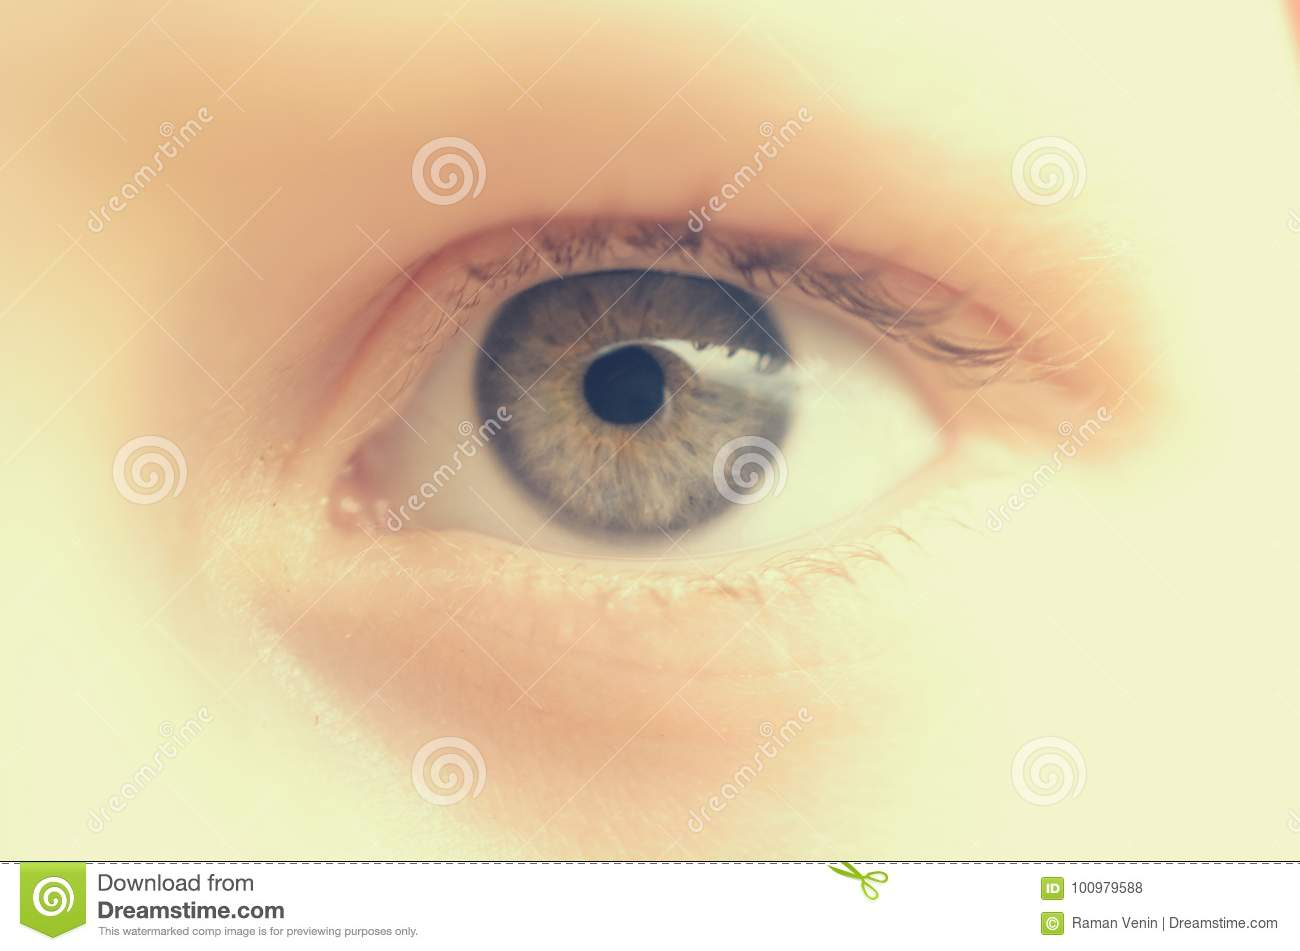 look straight in the eye